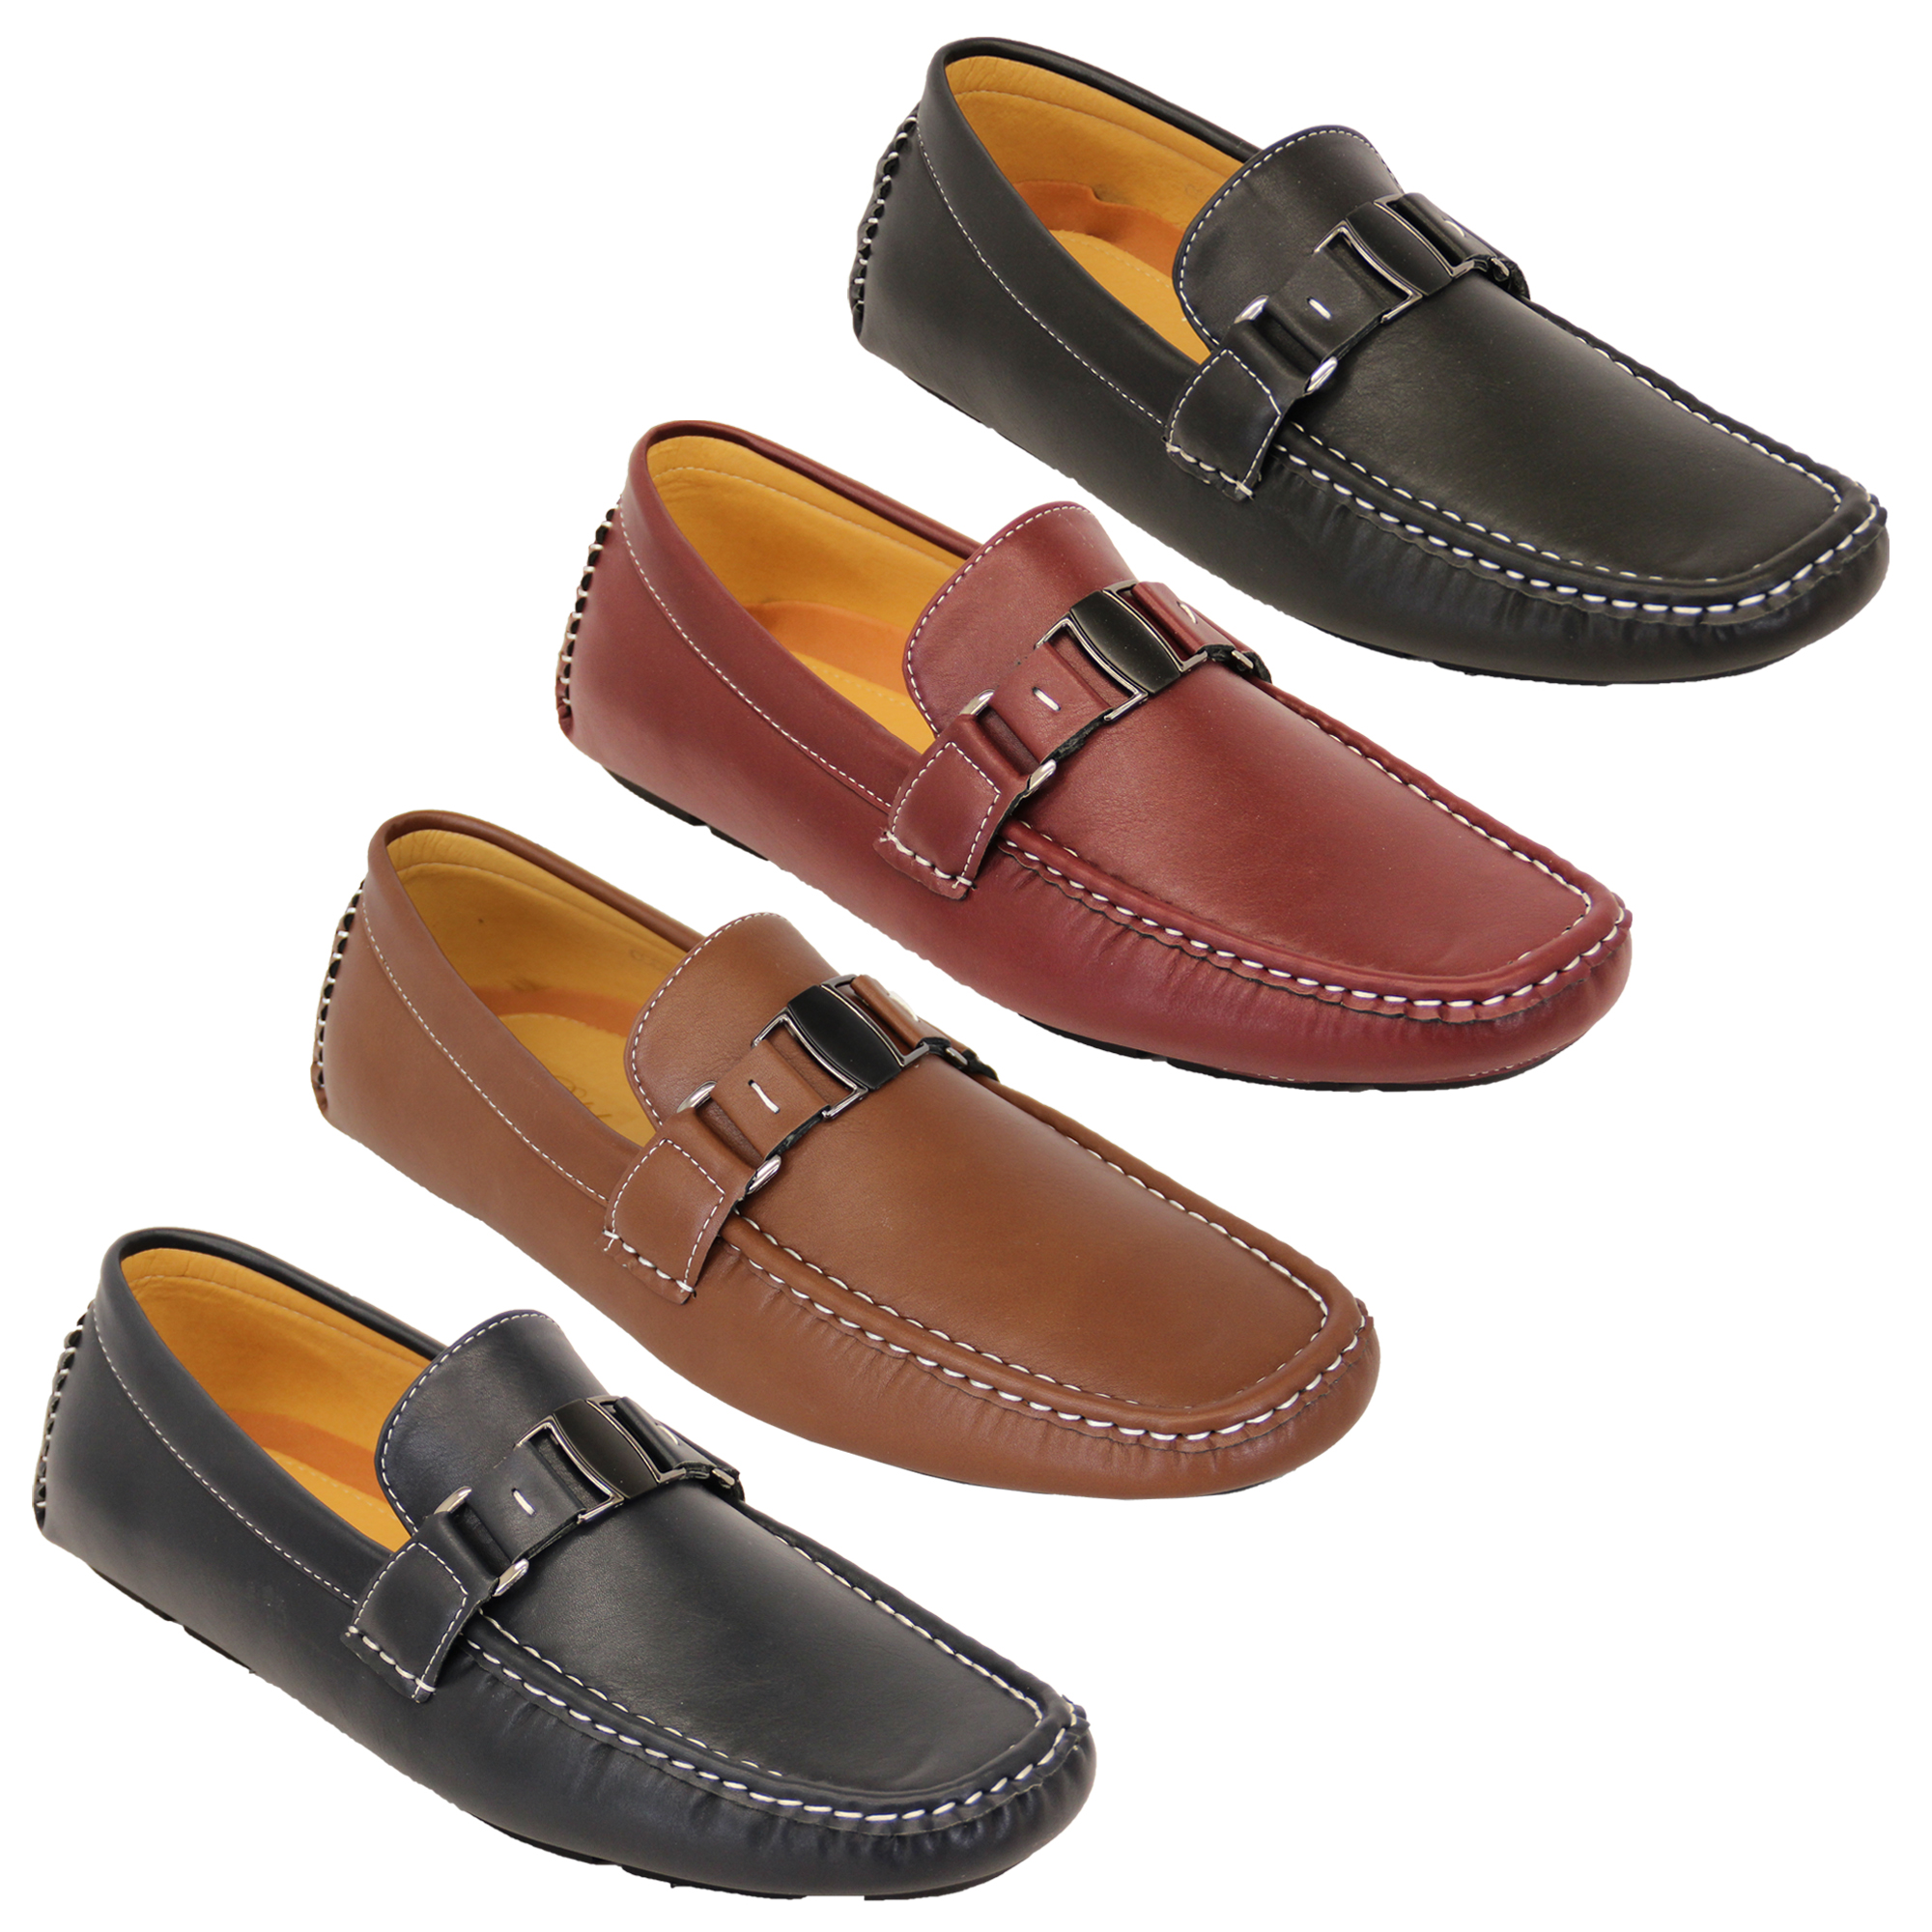 c9a999c8e389b Mens Moccasins Leather Look Shoes Driving Loafers Slip On Boat ...